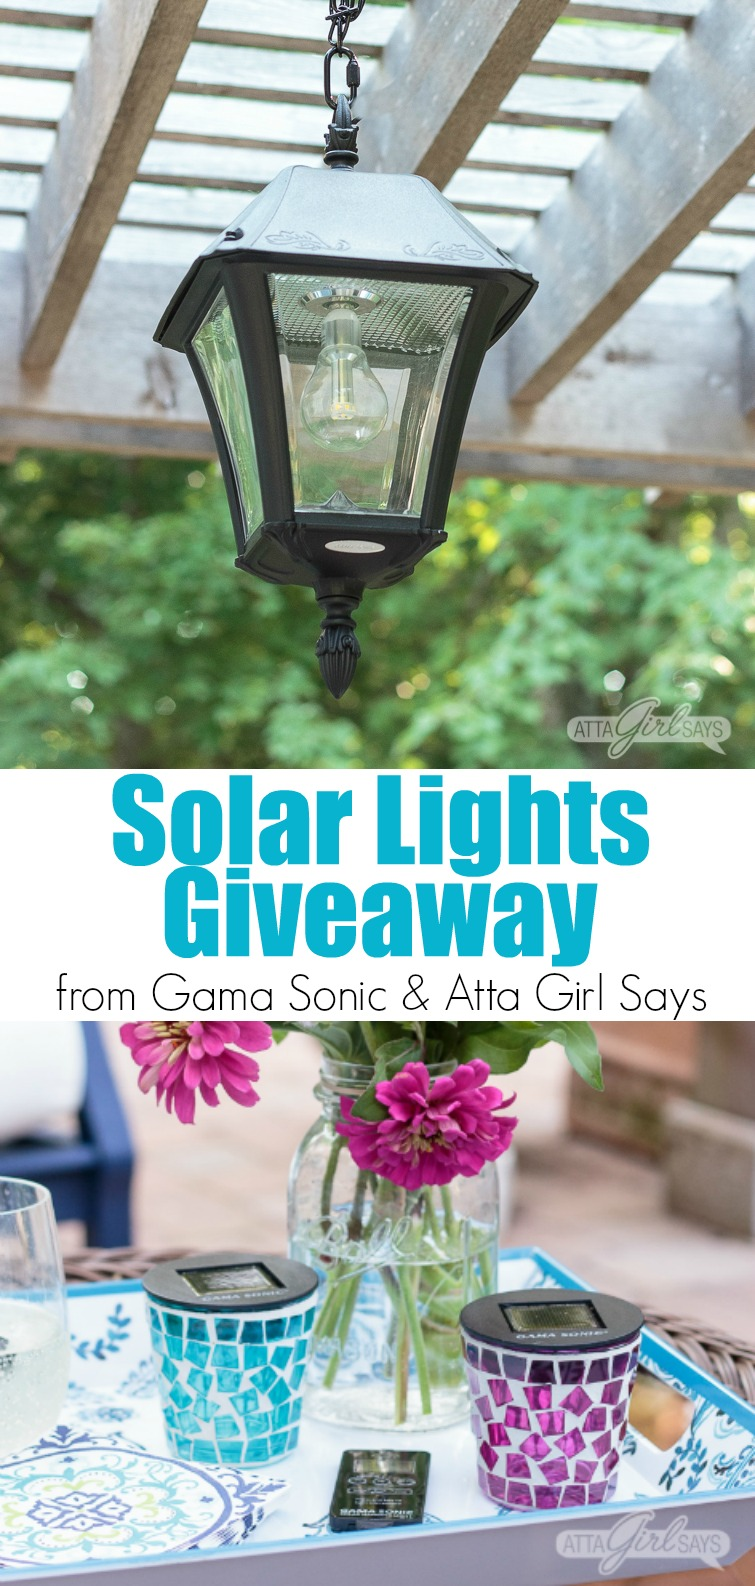 Enter to win an outdoor solar chandelier pendant light or a solar tealight candle from Gama Sonic and AttaGirlSays.com #ad #giveaway #win #solarlights #outdoorlights